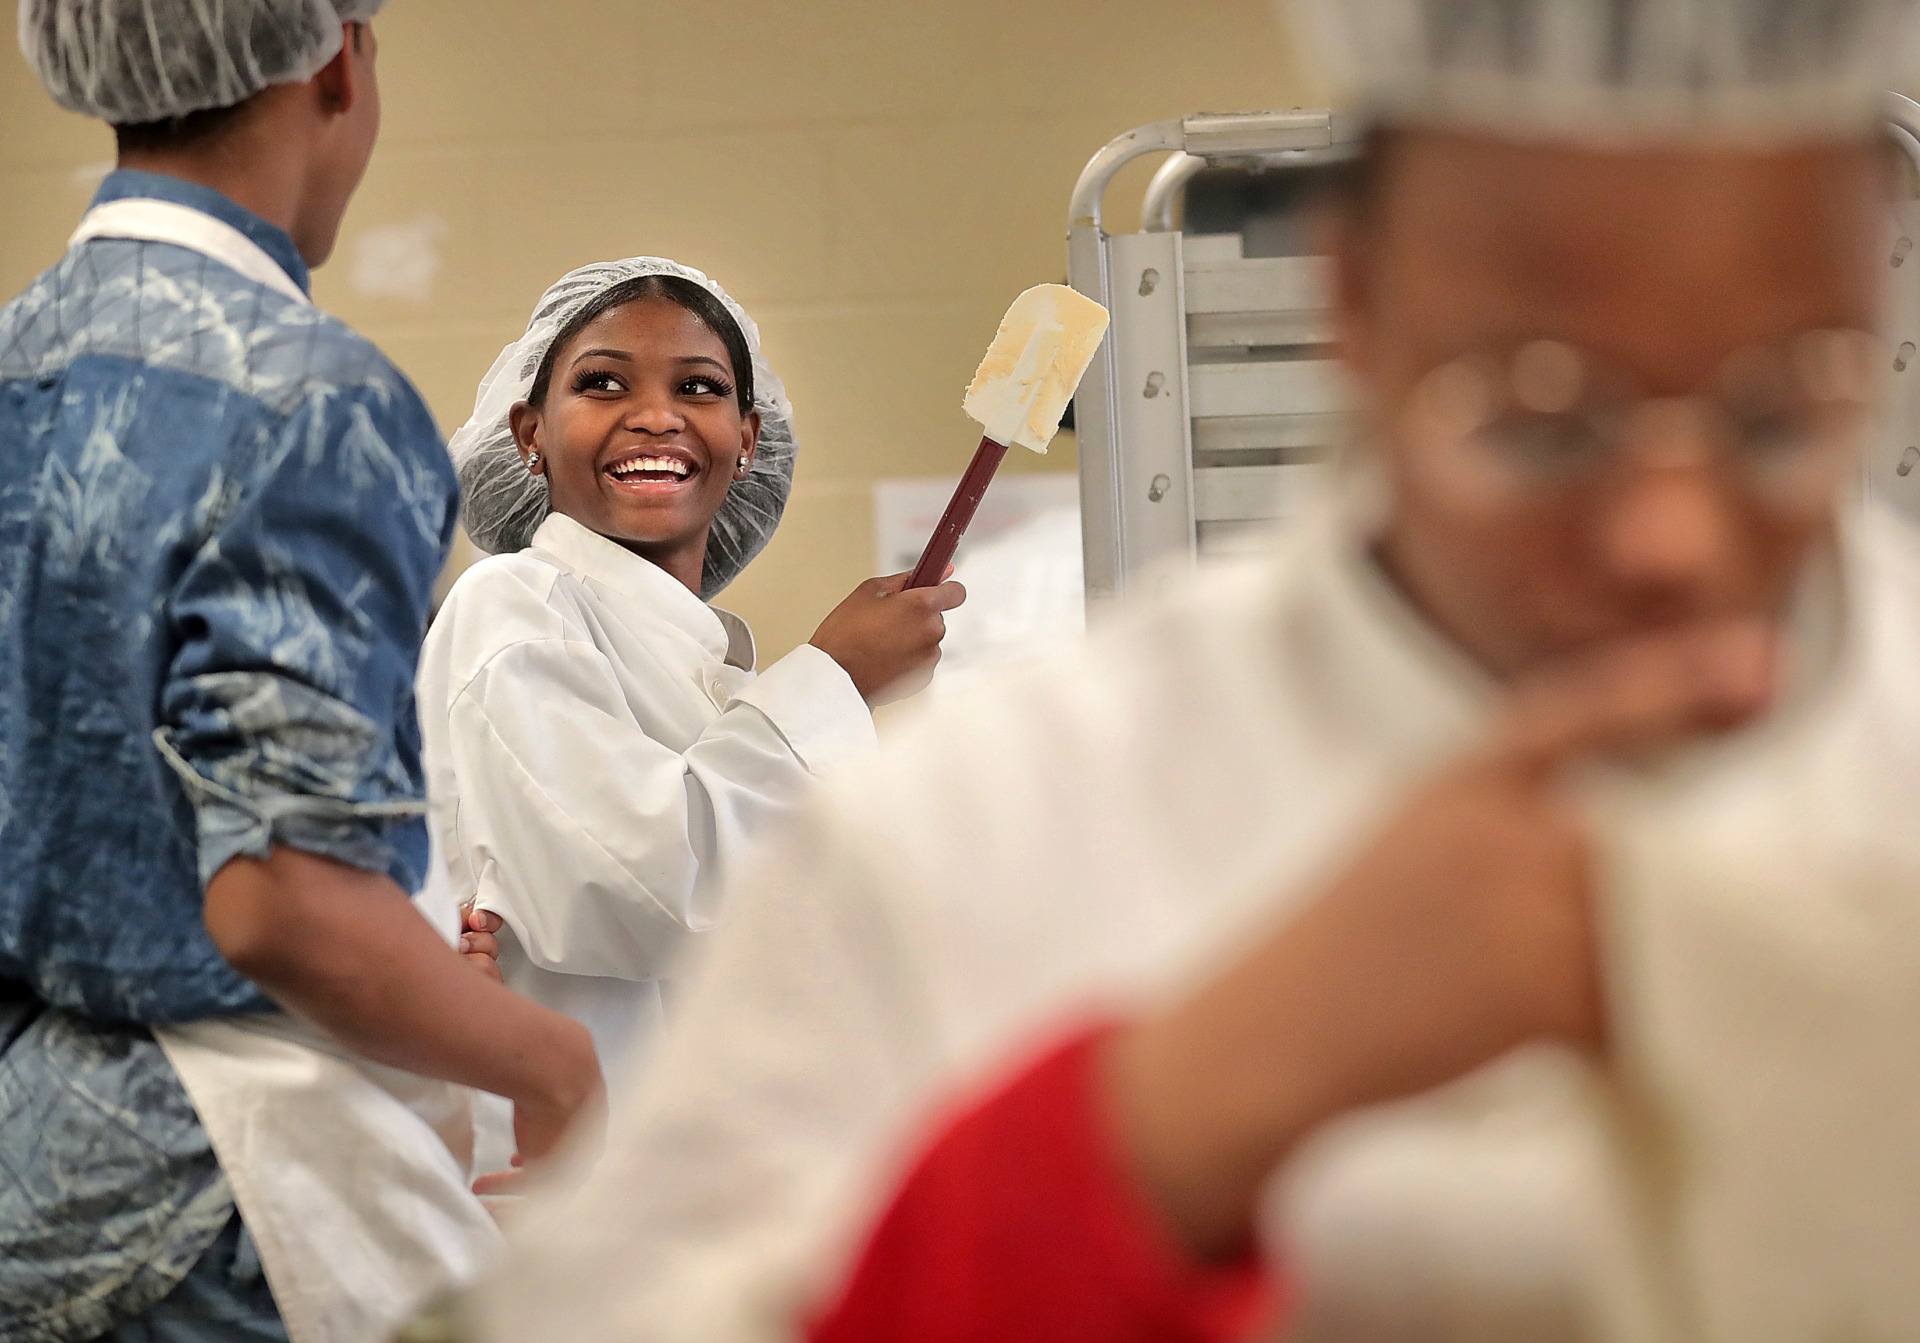 <strong>Culinary arts students Joshua Ivory (left) and Katrice Jones bake cookies during class at the Trezevant Career and Technology Center where high school students from the Raleigh-Frayser area can attend classes in vocational programs like culinary arts, cosmotology and finance. In an effort to get kids on a career track earlier, Sen. Katrina Robinson is backing a piece of legislation that would help middle schools start career and technical education courses.</strong> (Jim Weber/Daily Memphian)